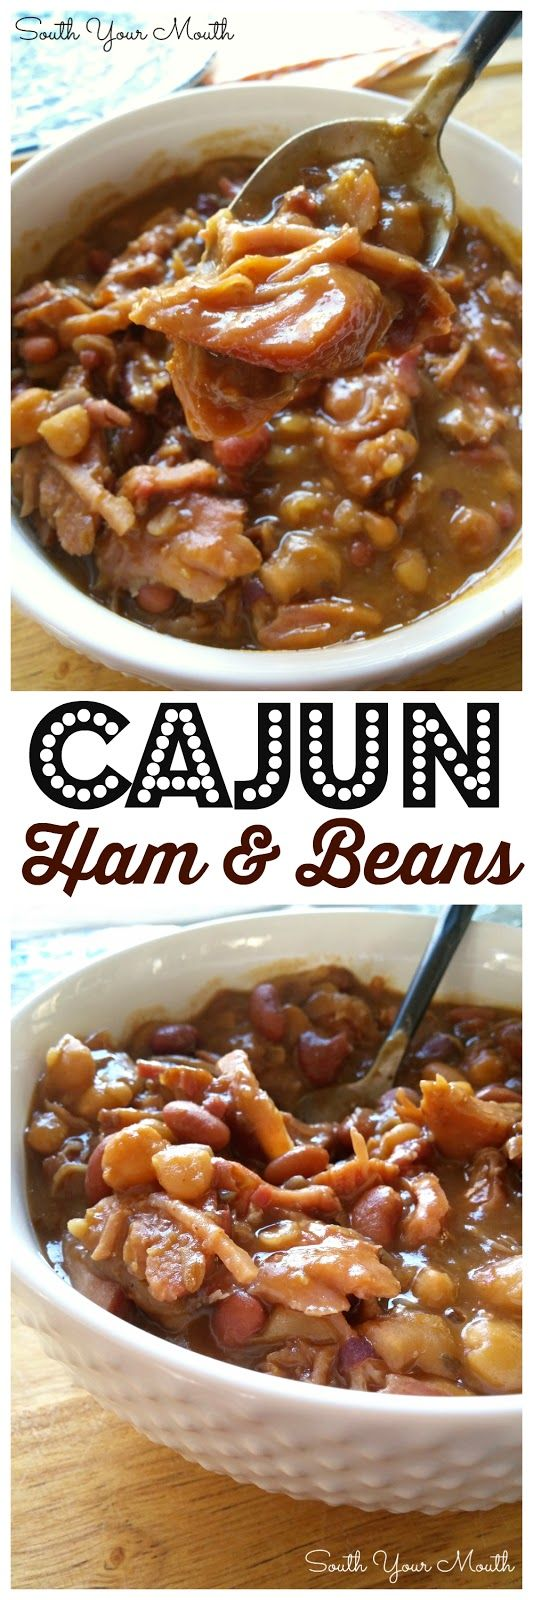 Cajun Ham & Beans! Dried beans cooked low and slow with a ham bone and Cajun seasonings. DELICIOUS over rice!